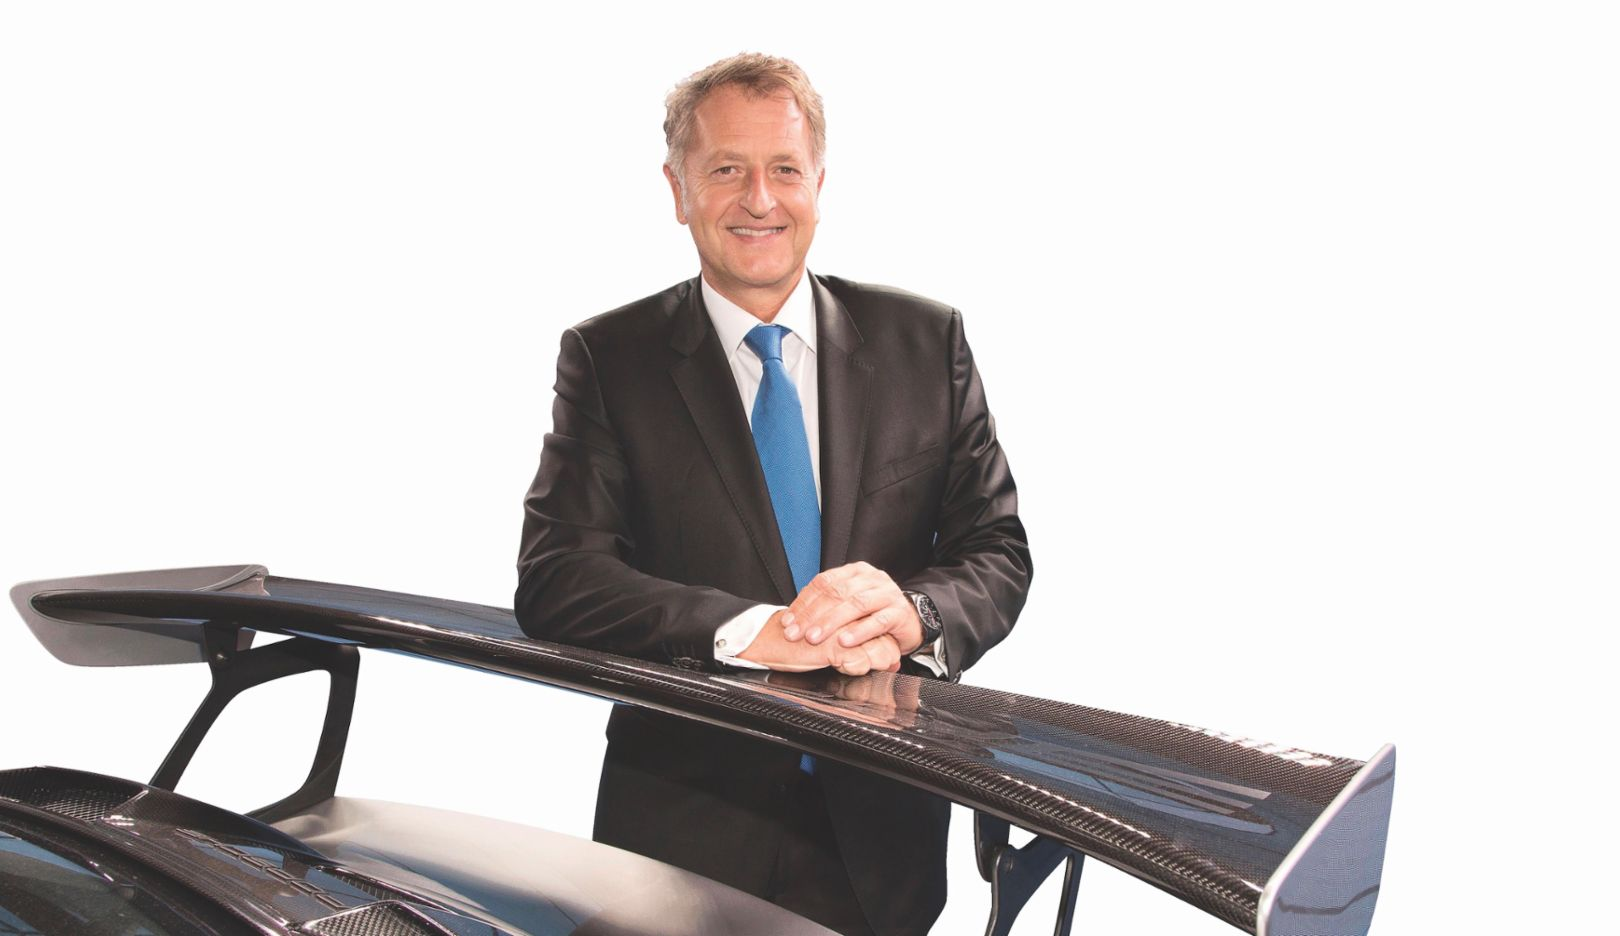 Detlev von Platen, Member of the Executive Board, Sales and Marketing, 2018, Porsche AG